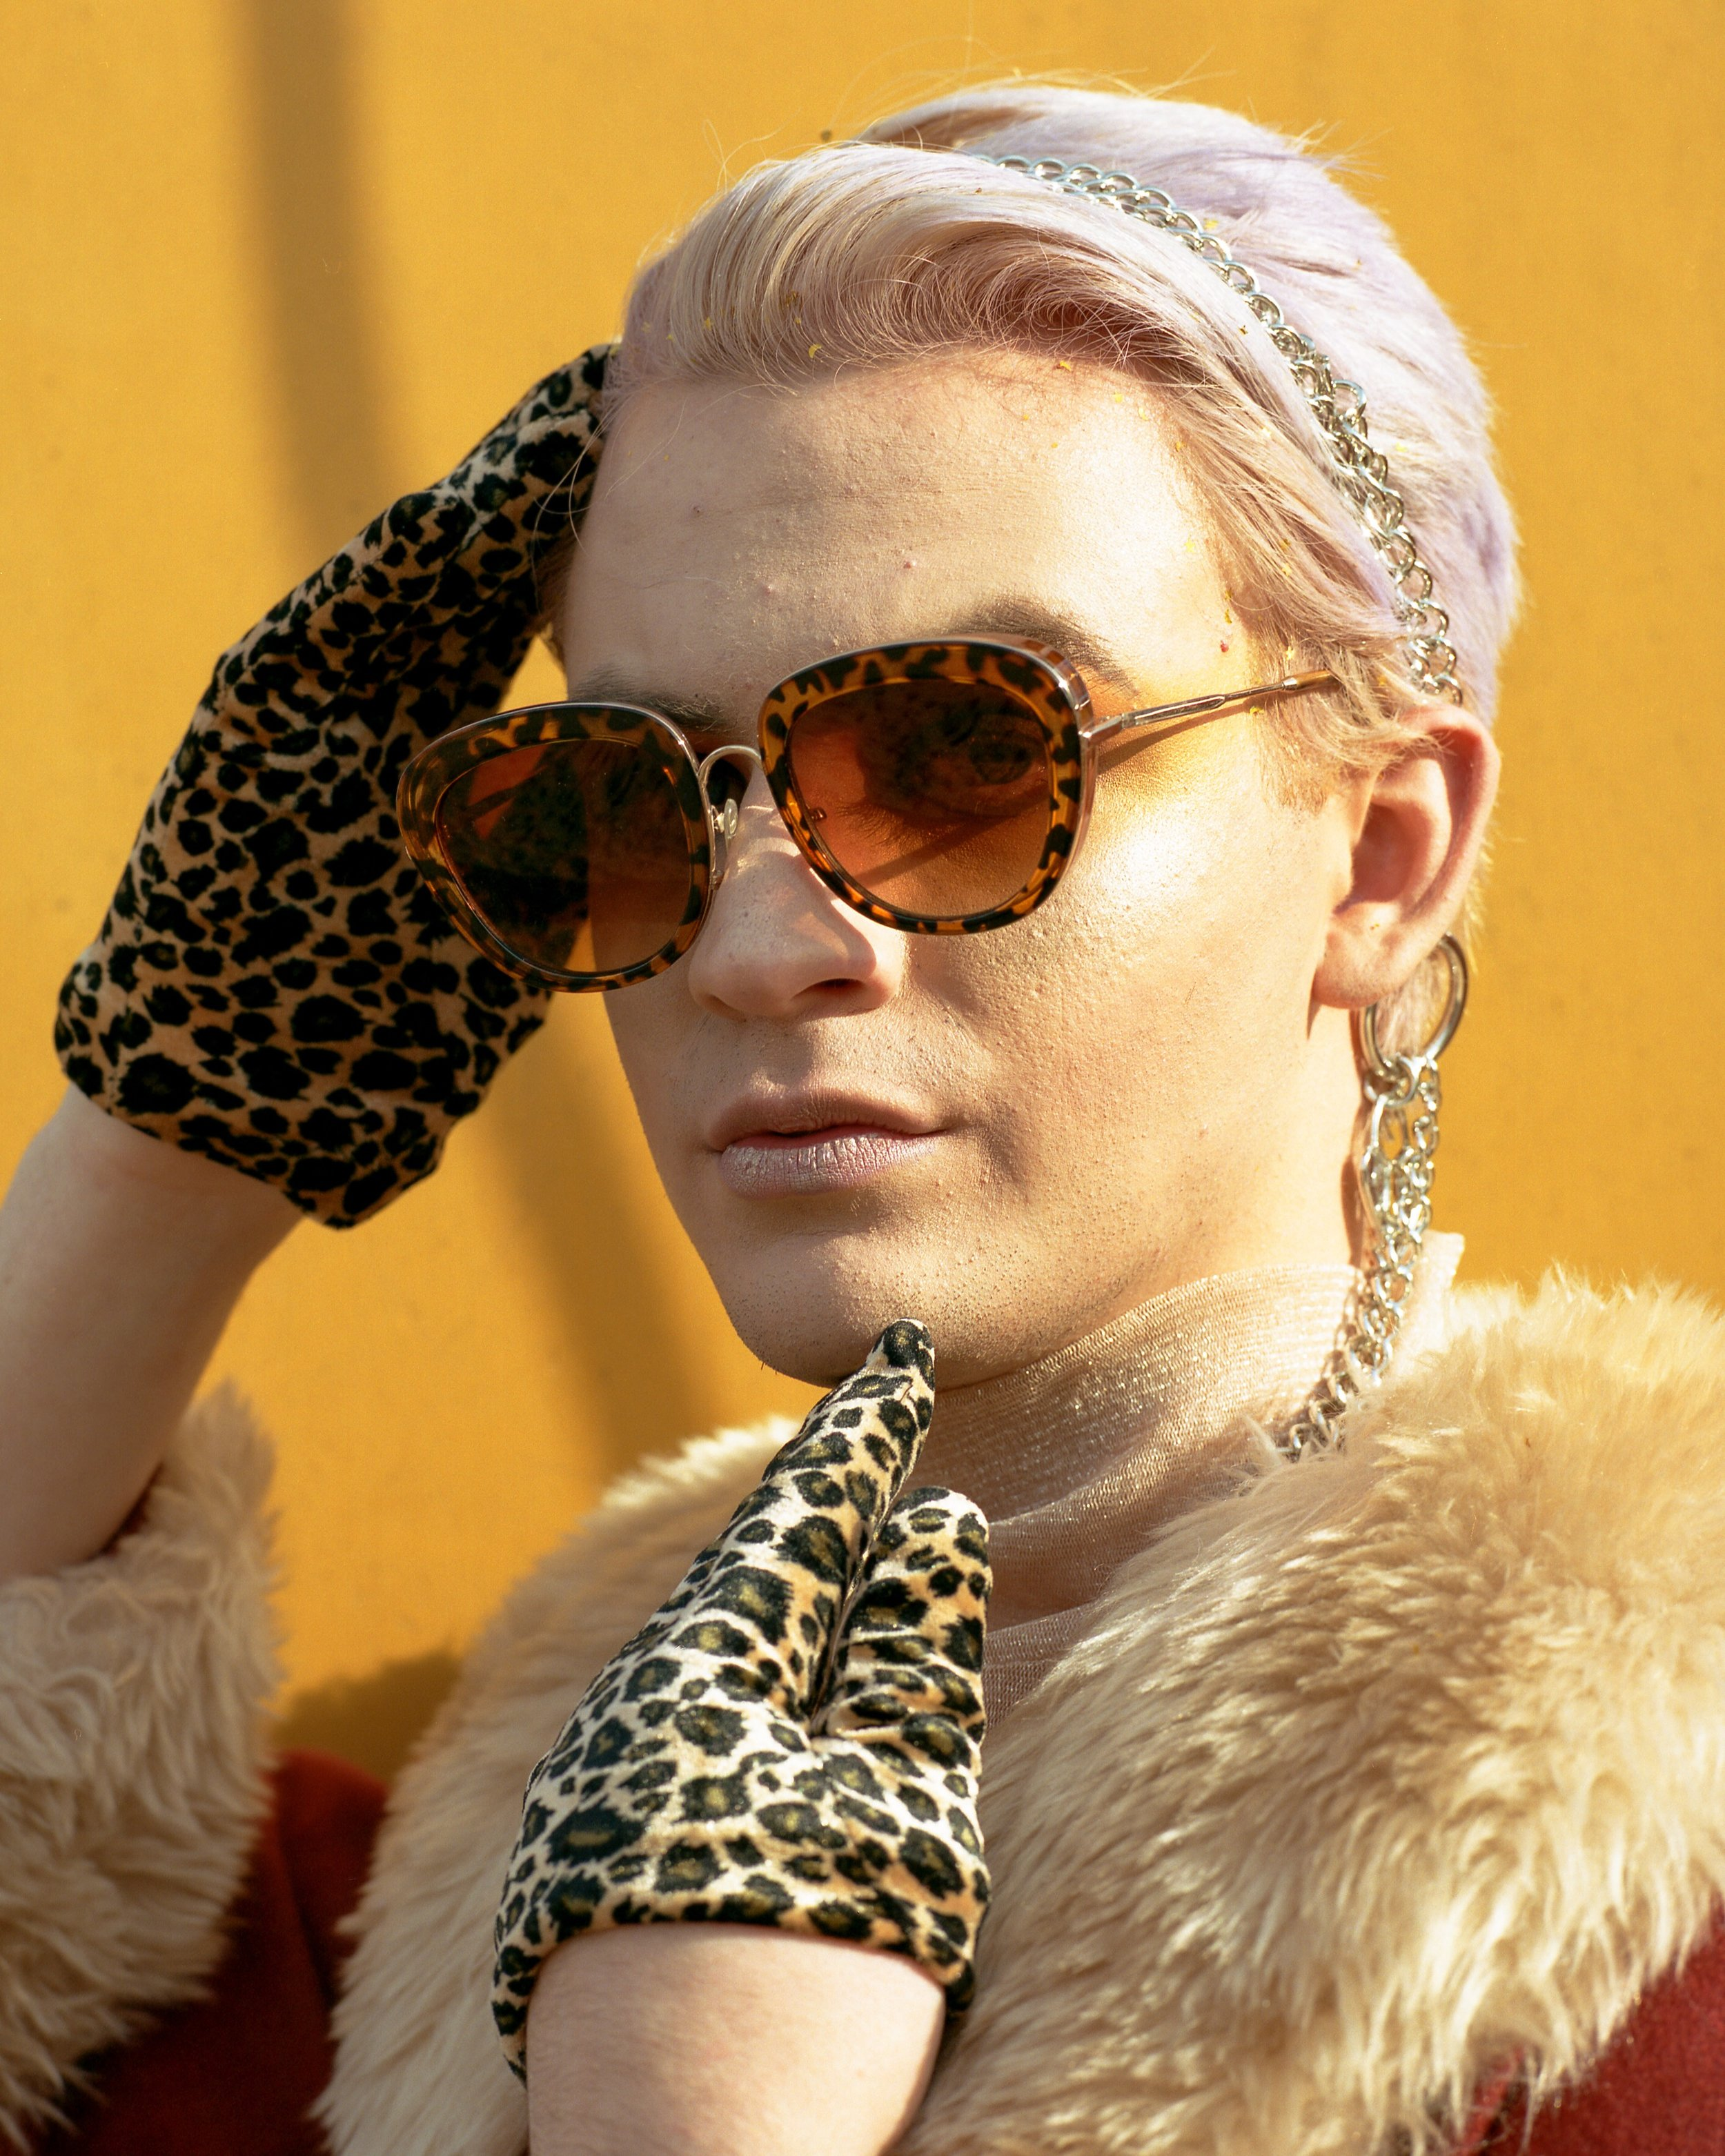 Cooper - @xcoopdeville //  Camera: Zach Thomas // Styling: Jalyn Rose